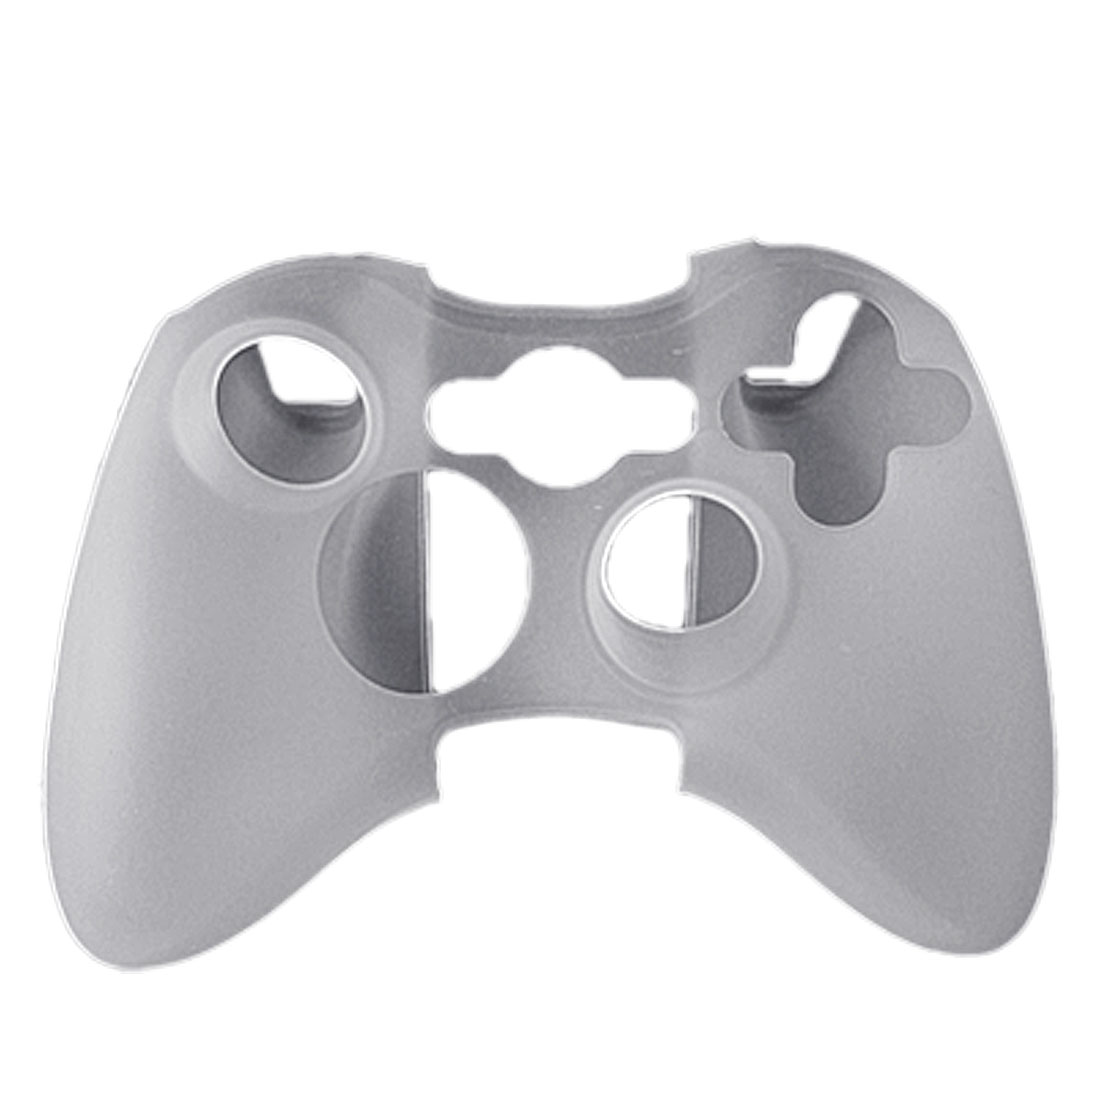 White Silicone Skin Case Cover Guard for Xbox 360 Controller